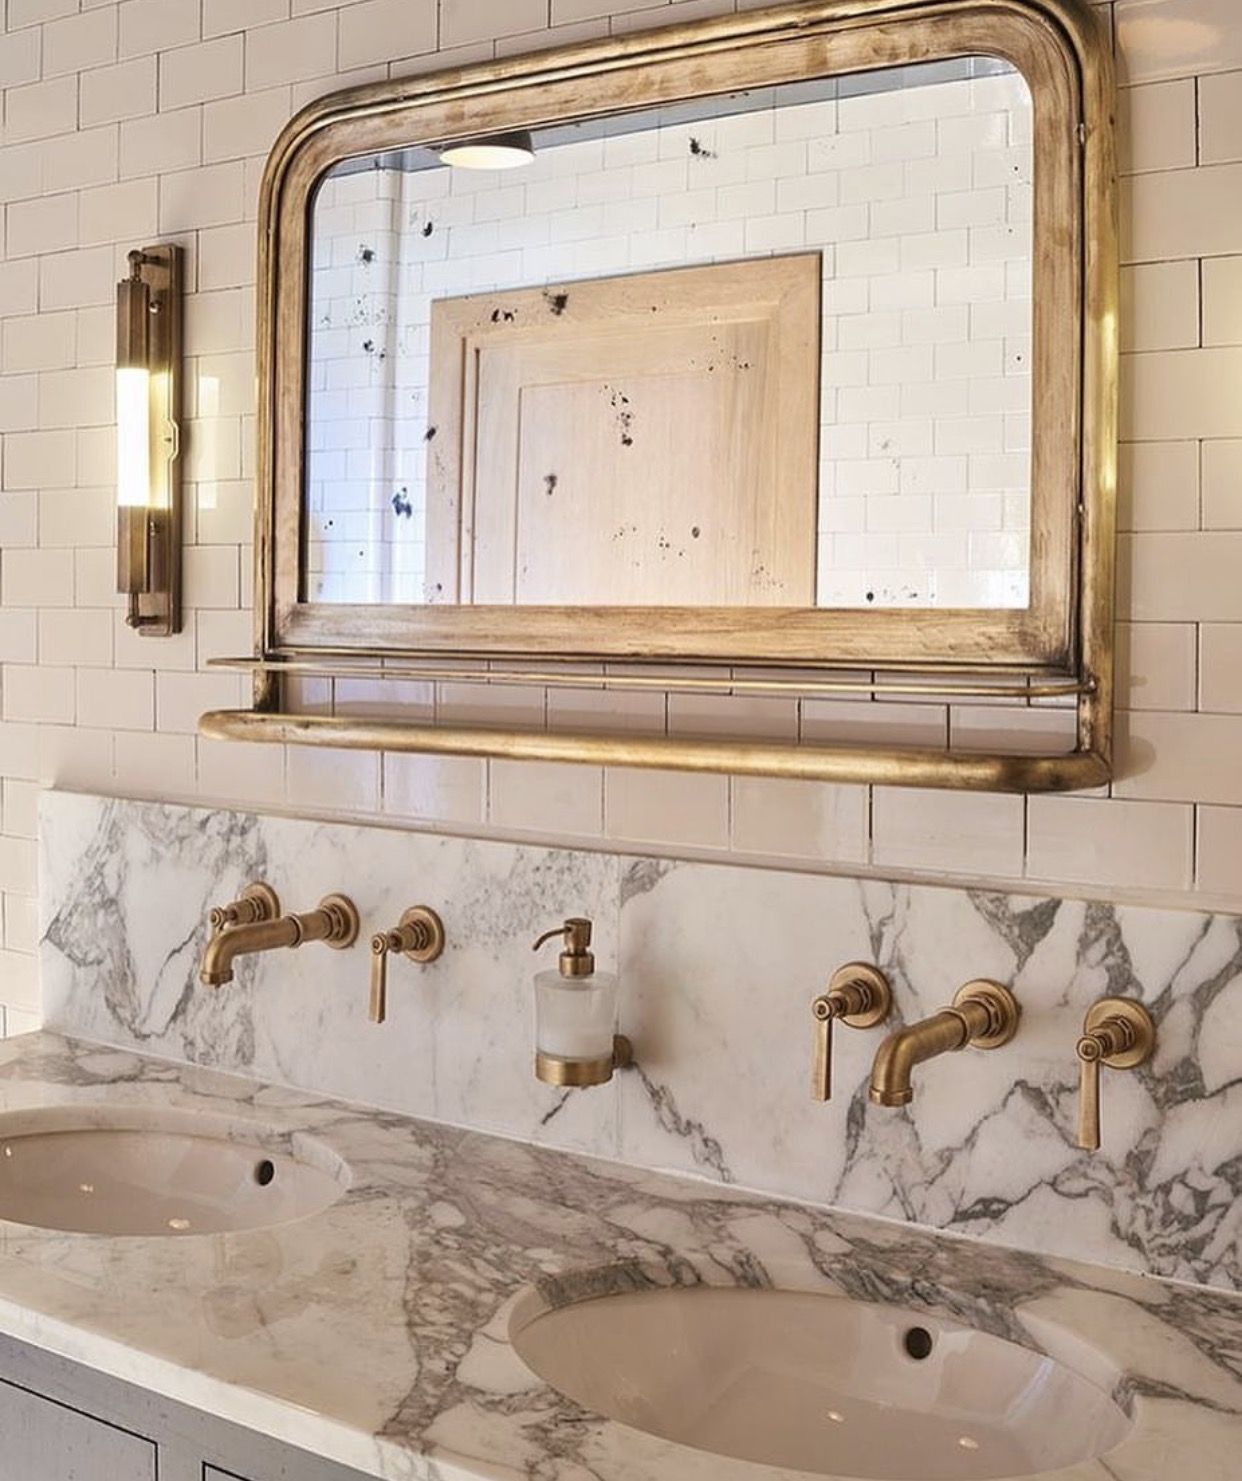 Counters Faucets Coming Out Of The Wall Bathroom Inspiration